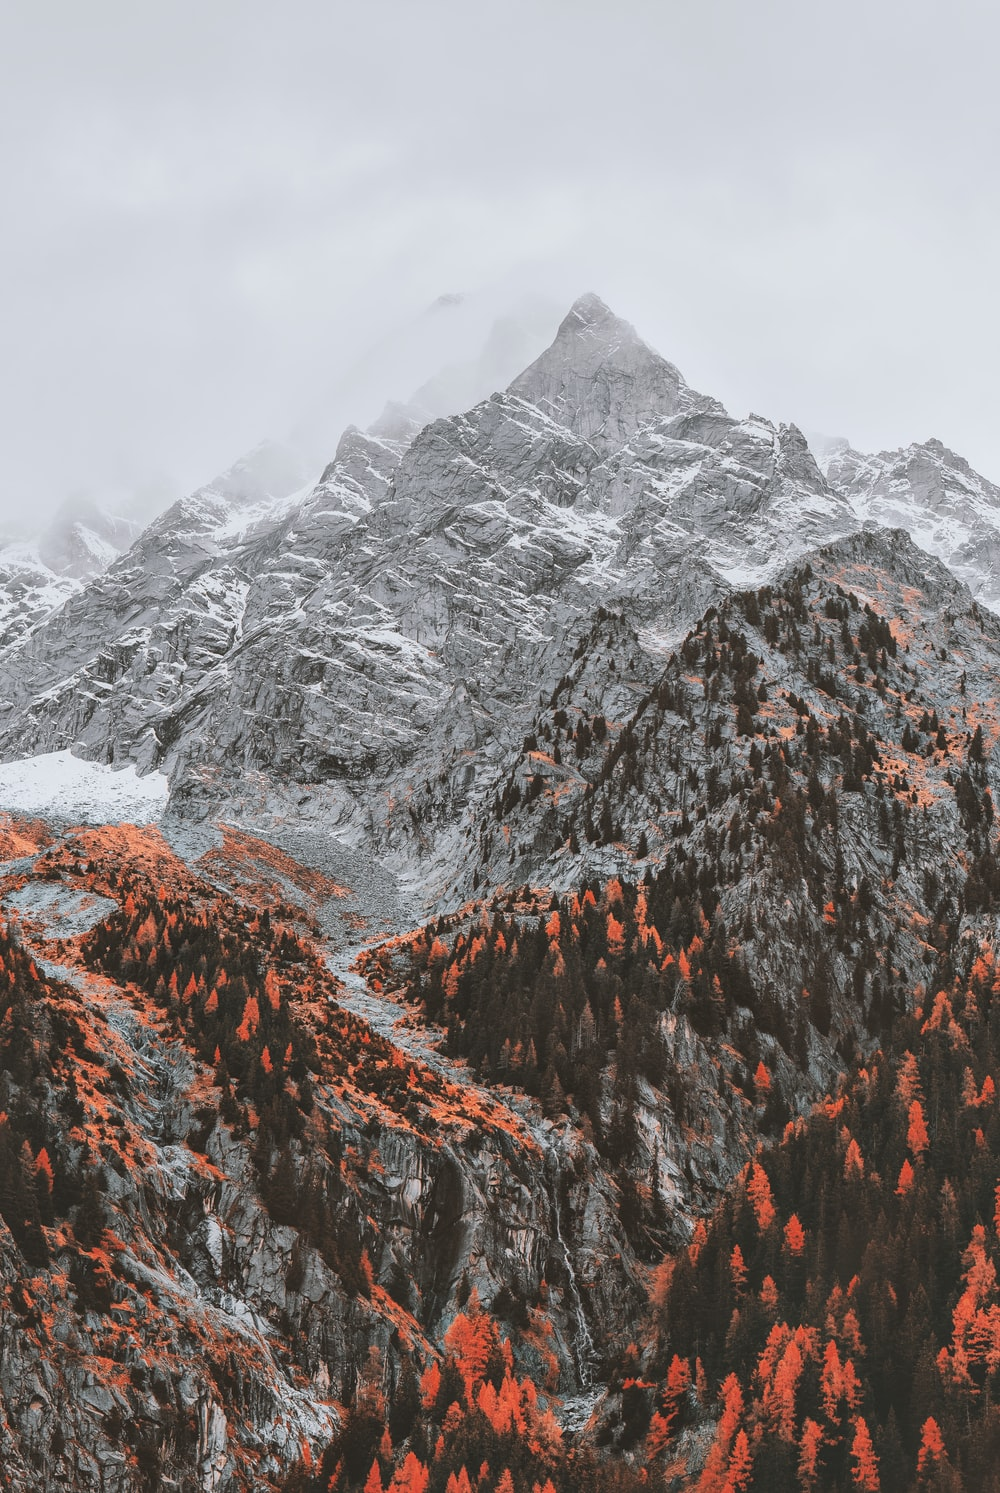 Mountain Pictures Download Free Images Stock Photos On Unsplash